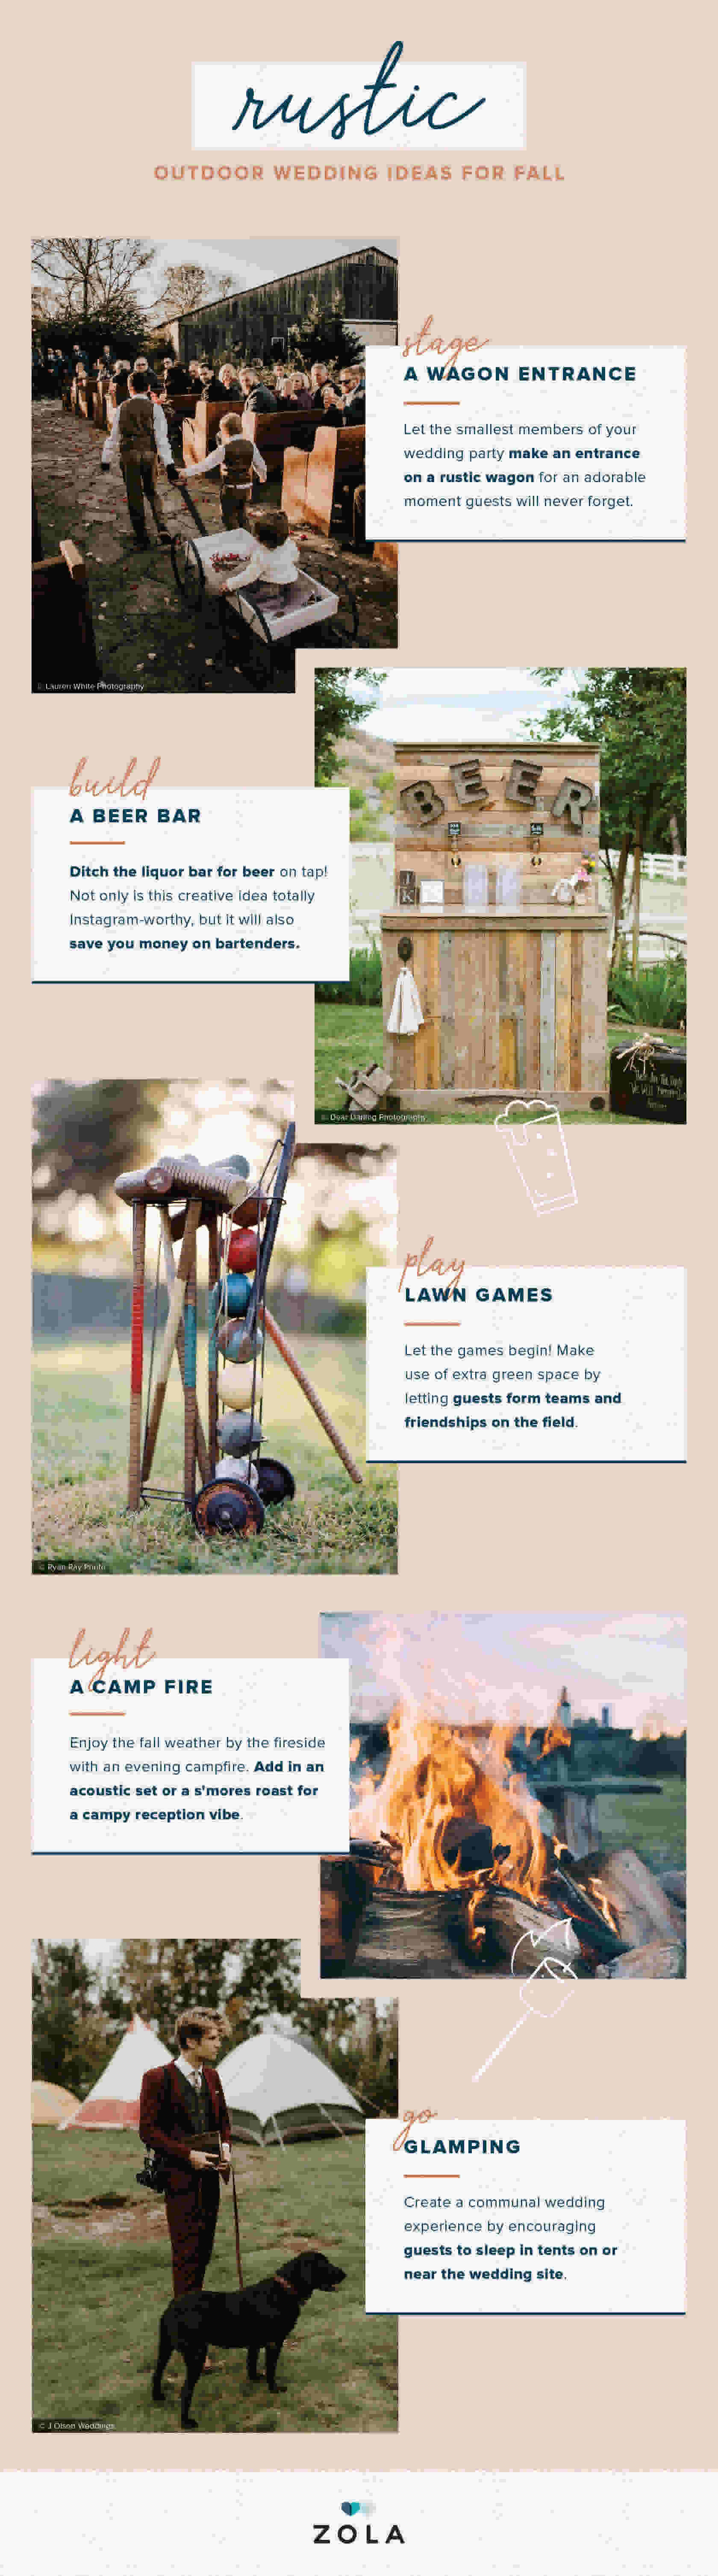 Outdoor-Wedding-ideas-for-fall-rustic